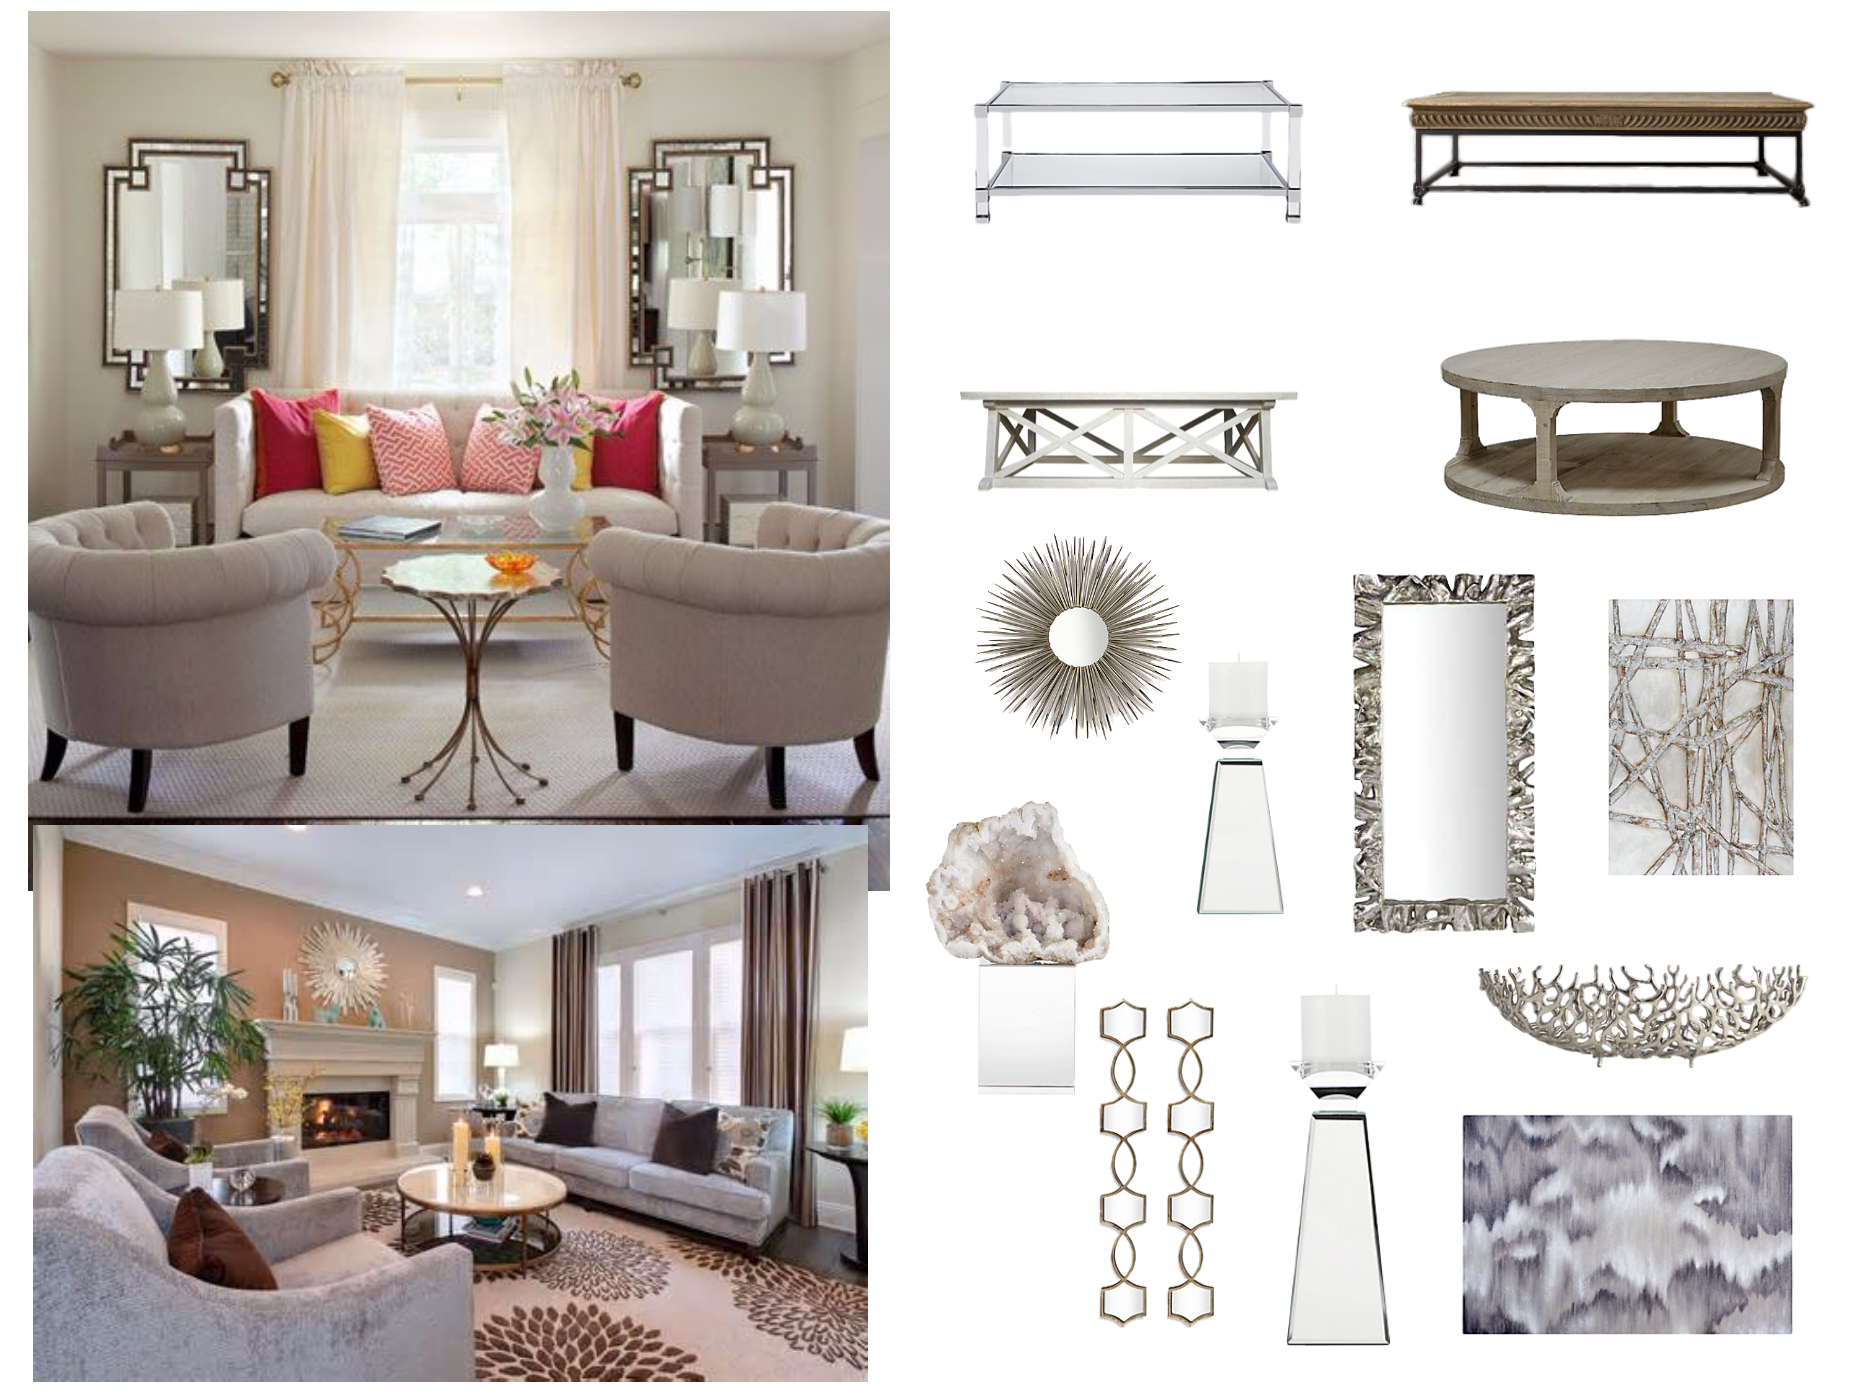 Online Interior Design Advice To Be A Winner In Among The